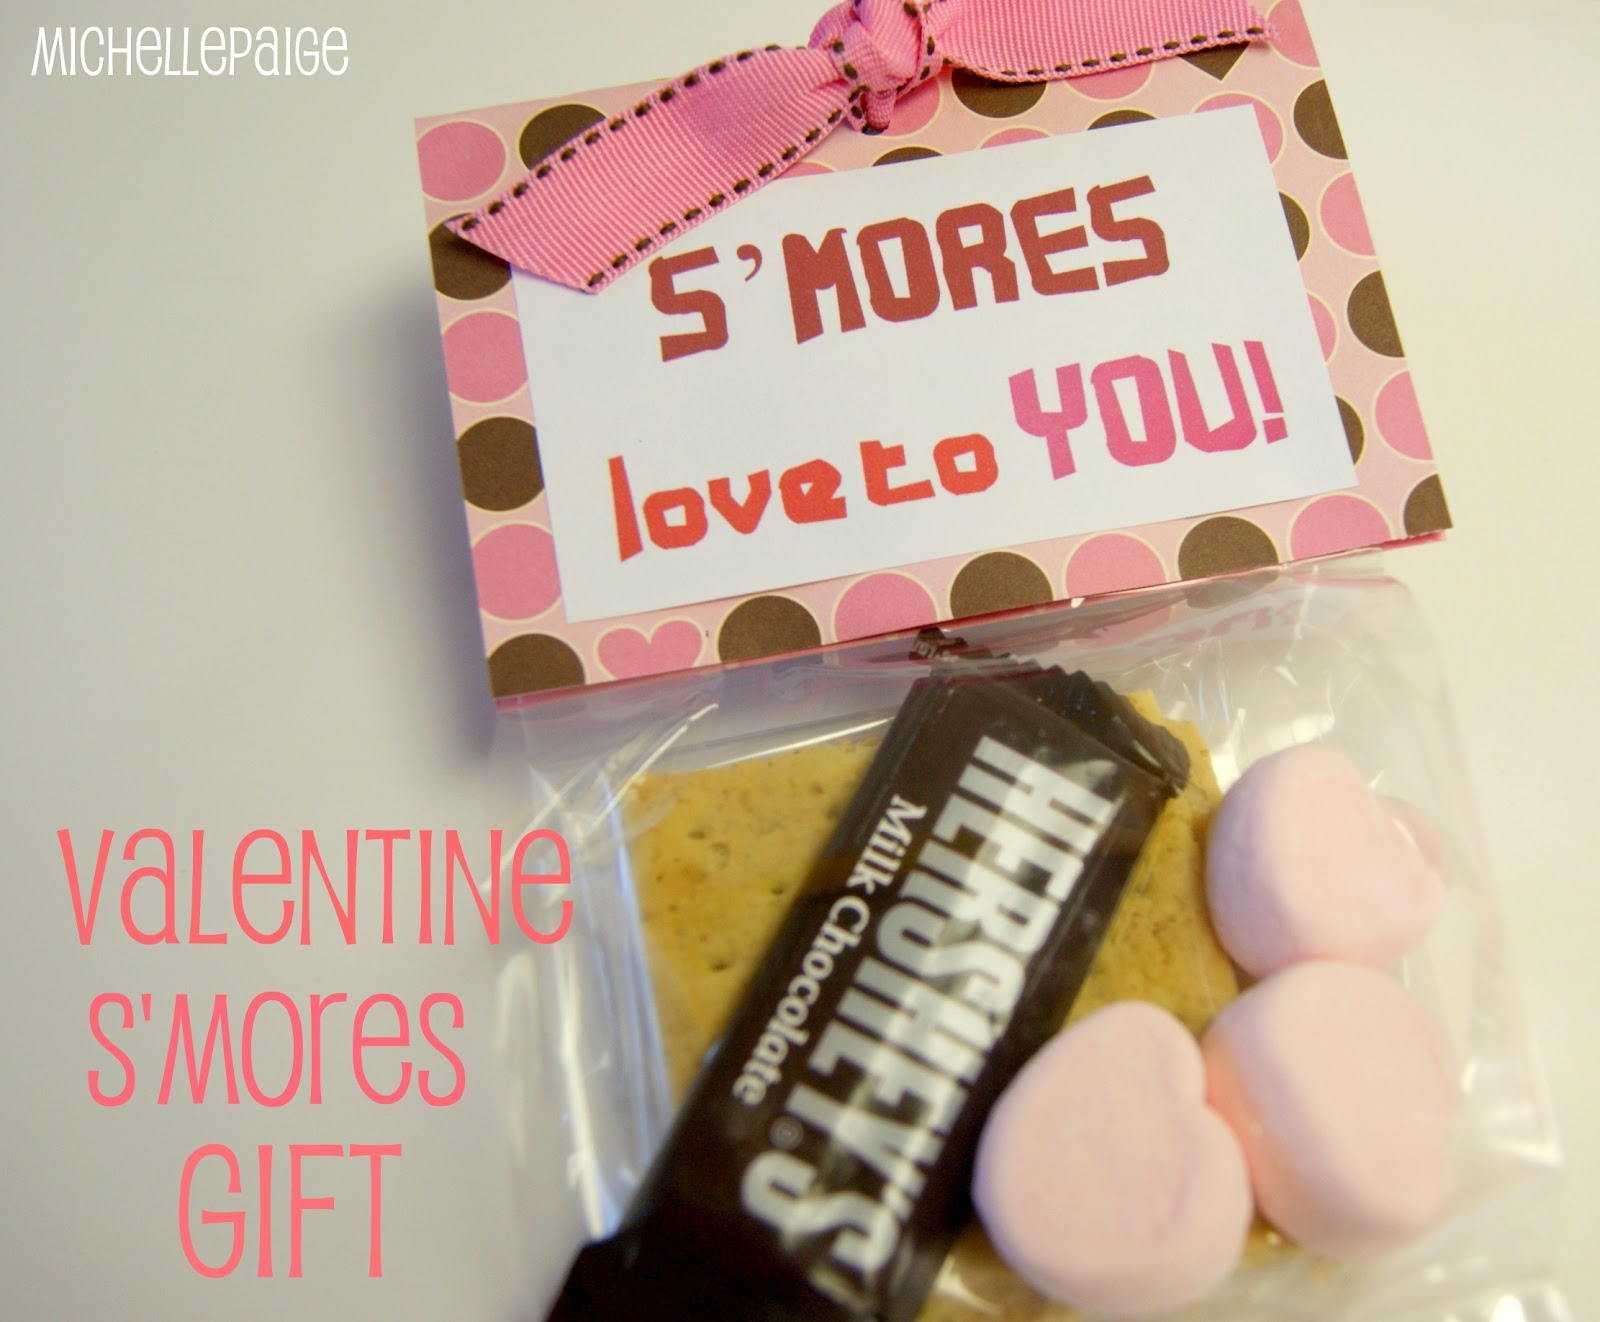 michelle paige blogs: Valentine S'mores Gift